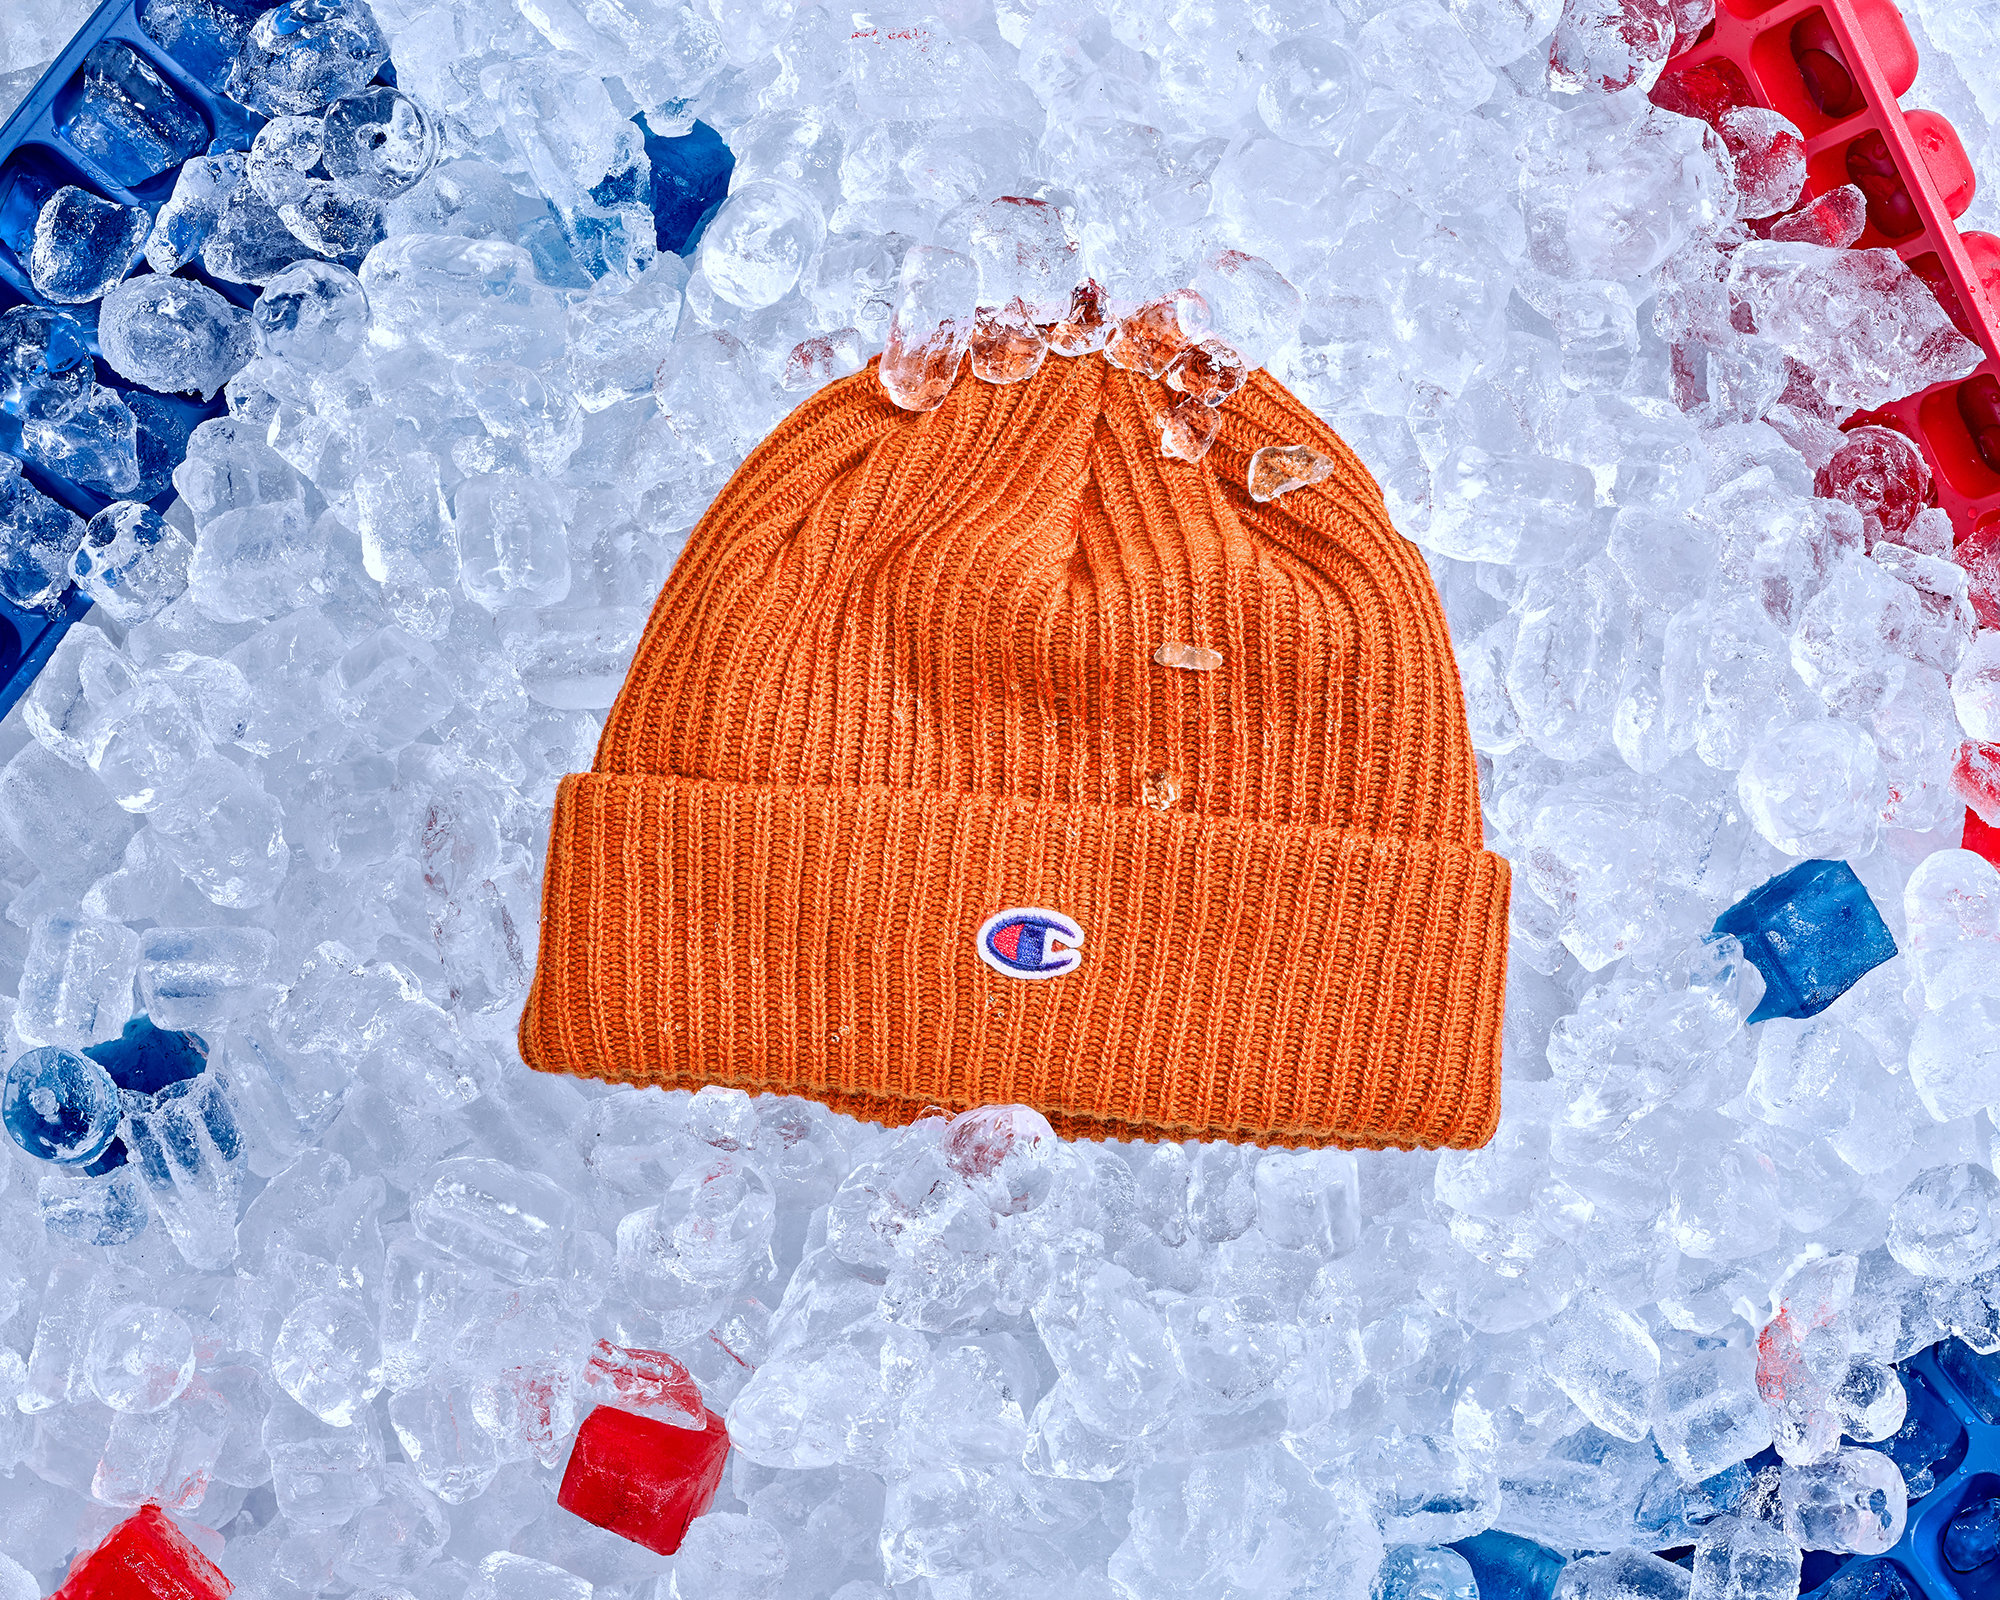 Orange beanie hat creative still life photography using fashion products shot overhead with creative props that surround the product